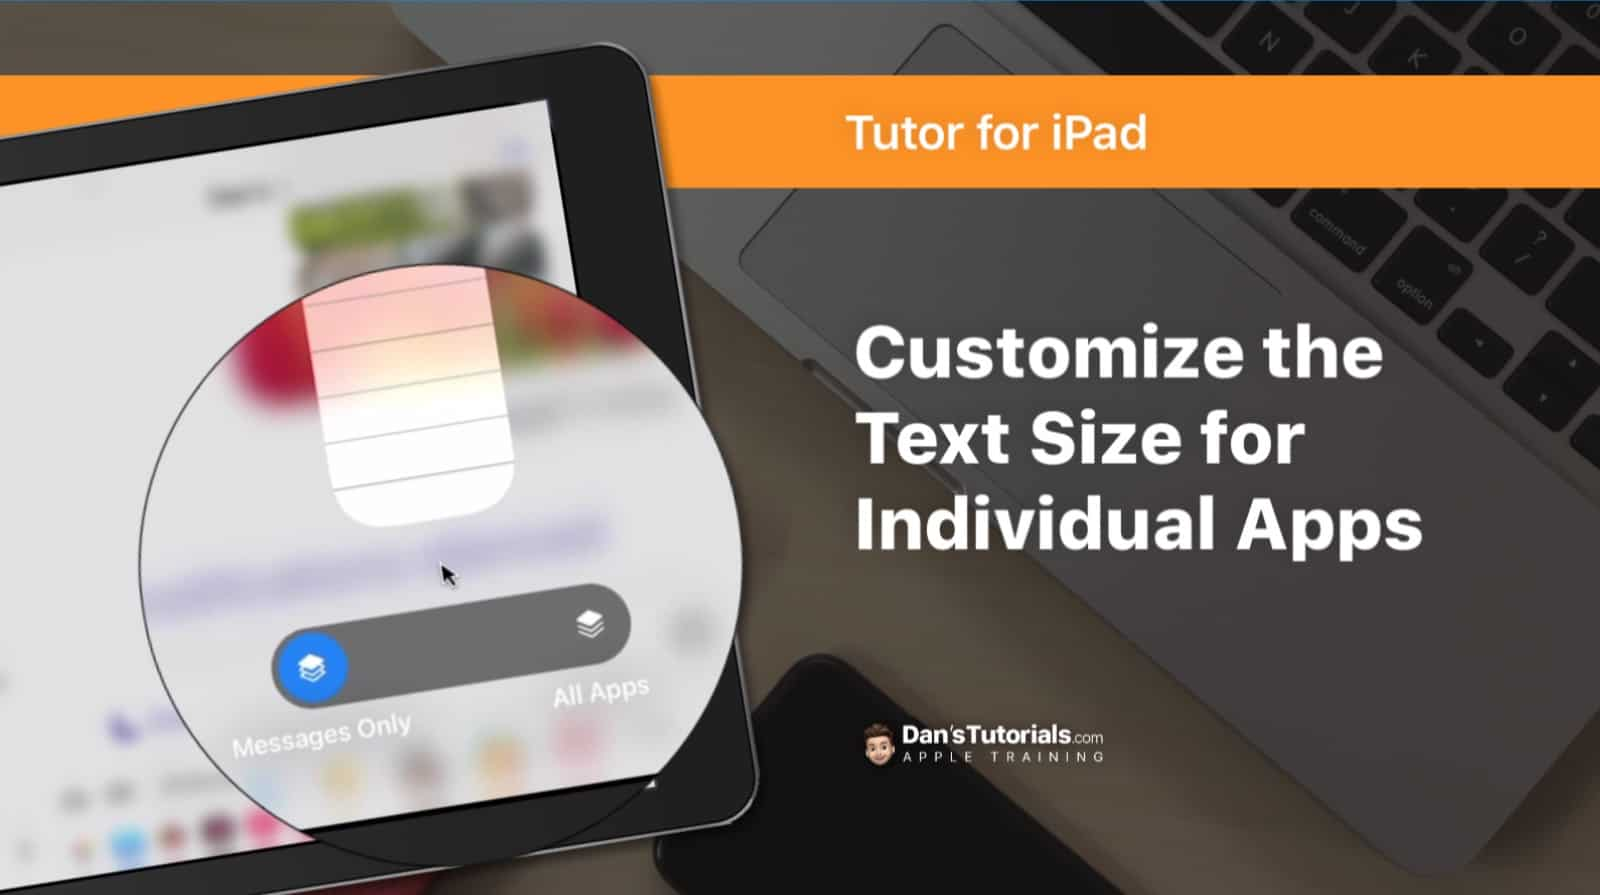 Set the Text Size for Individual Apps on the iPad